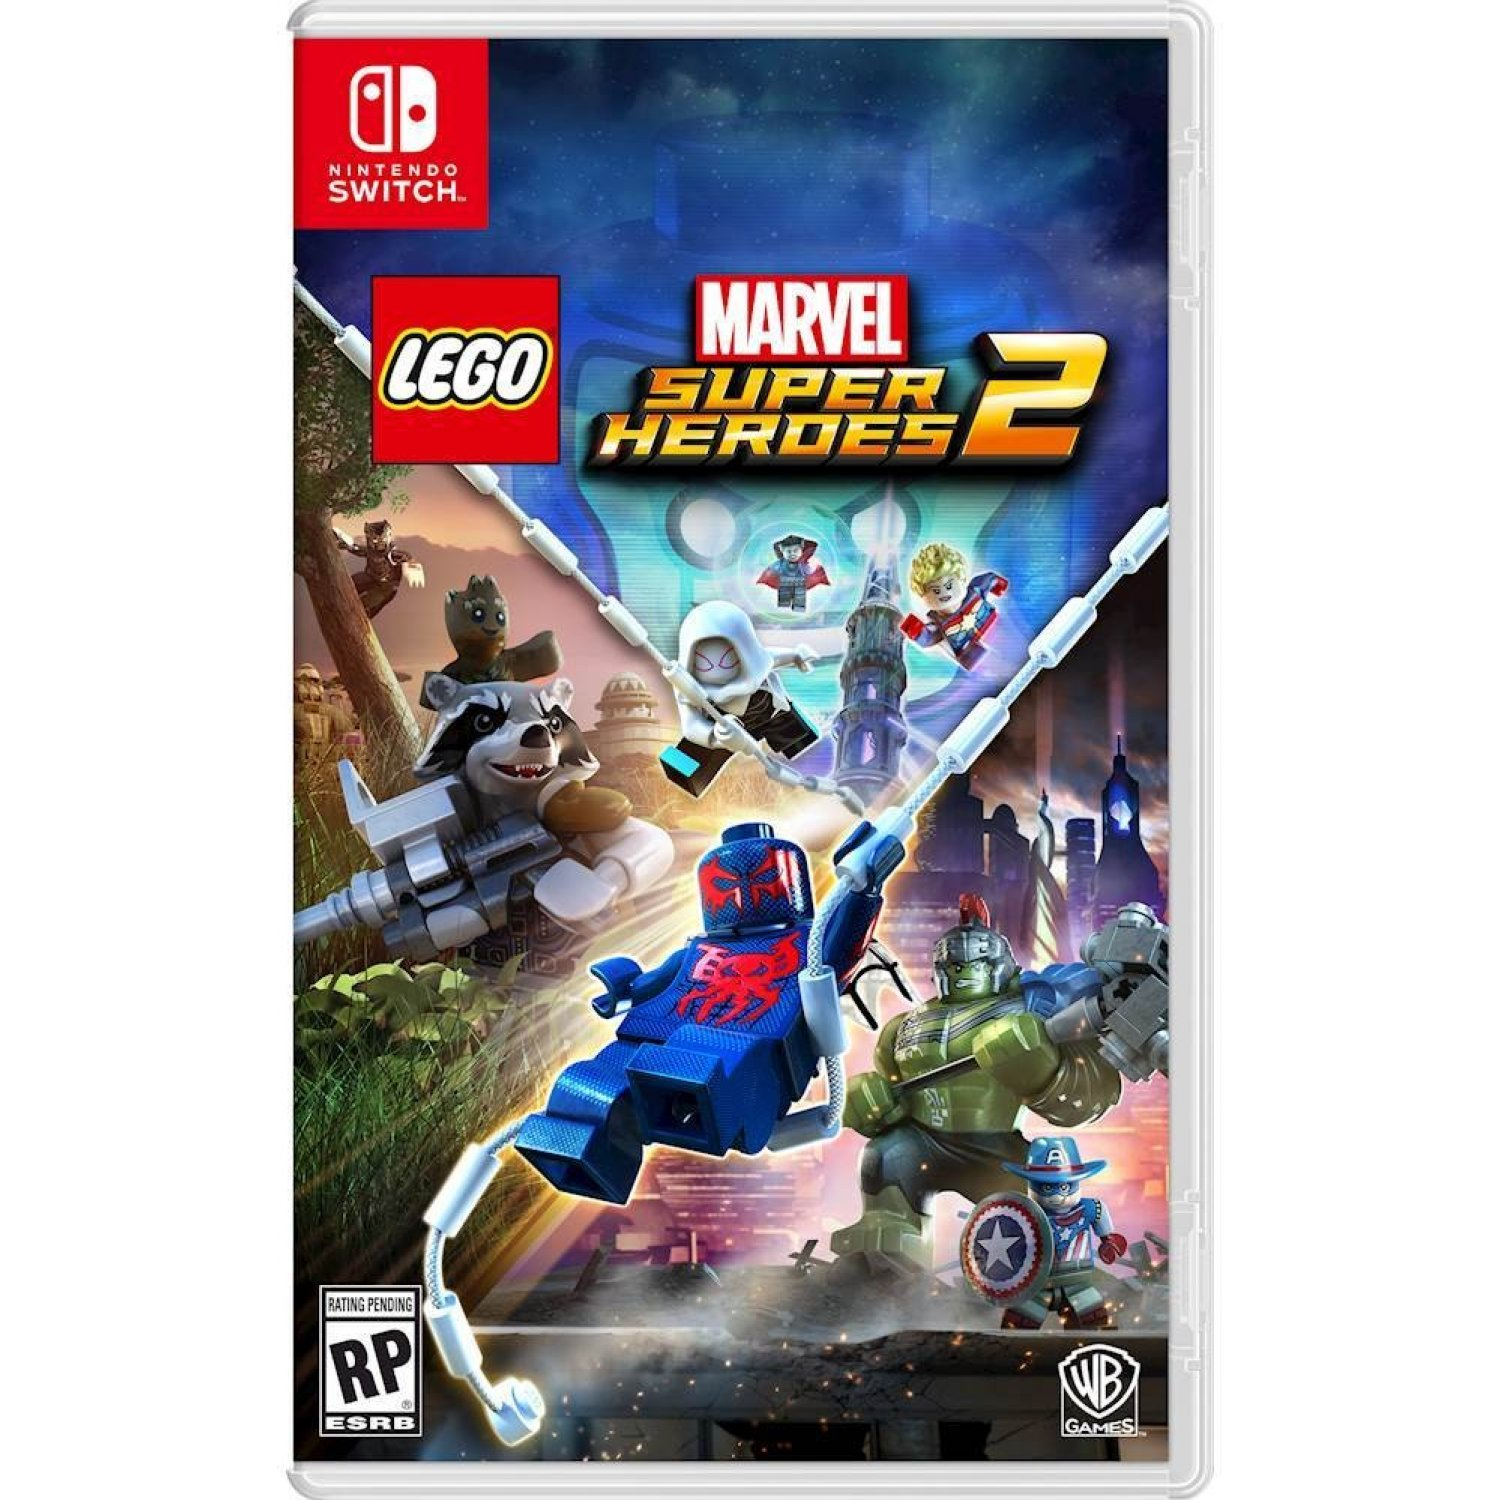 Nintendo Switch: LEGO Marvel Super Heroes 2 (Asia)